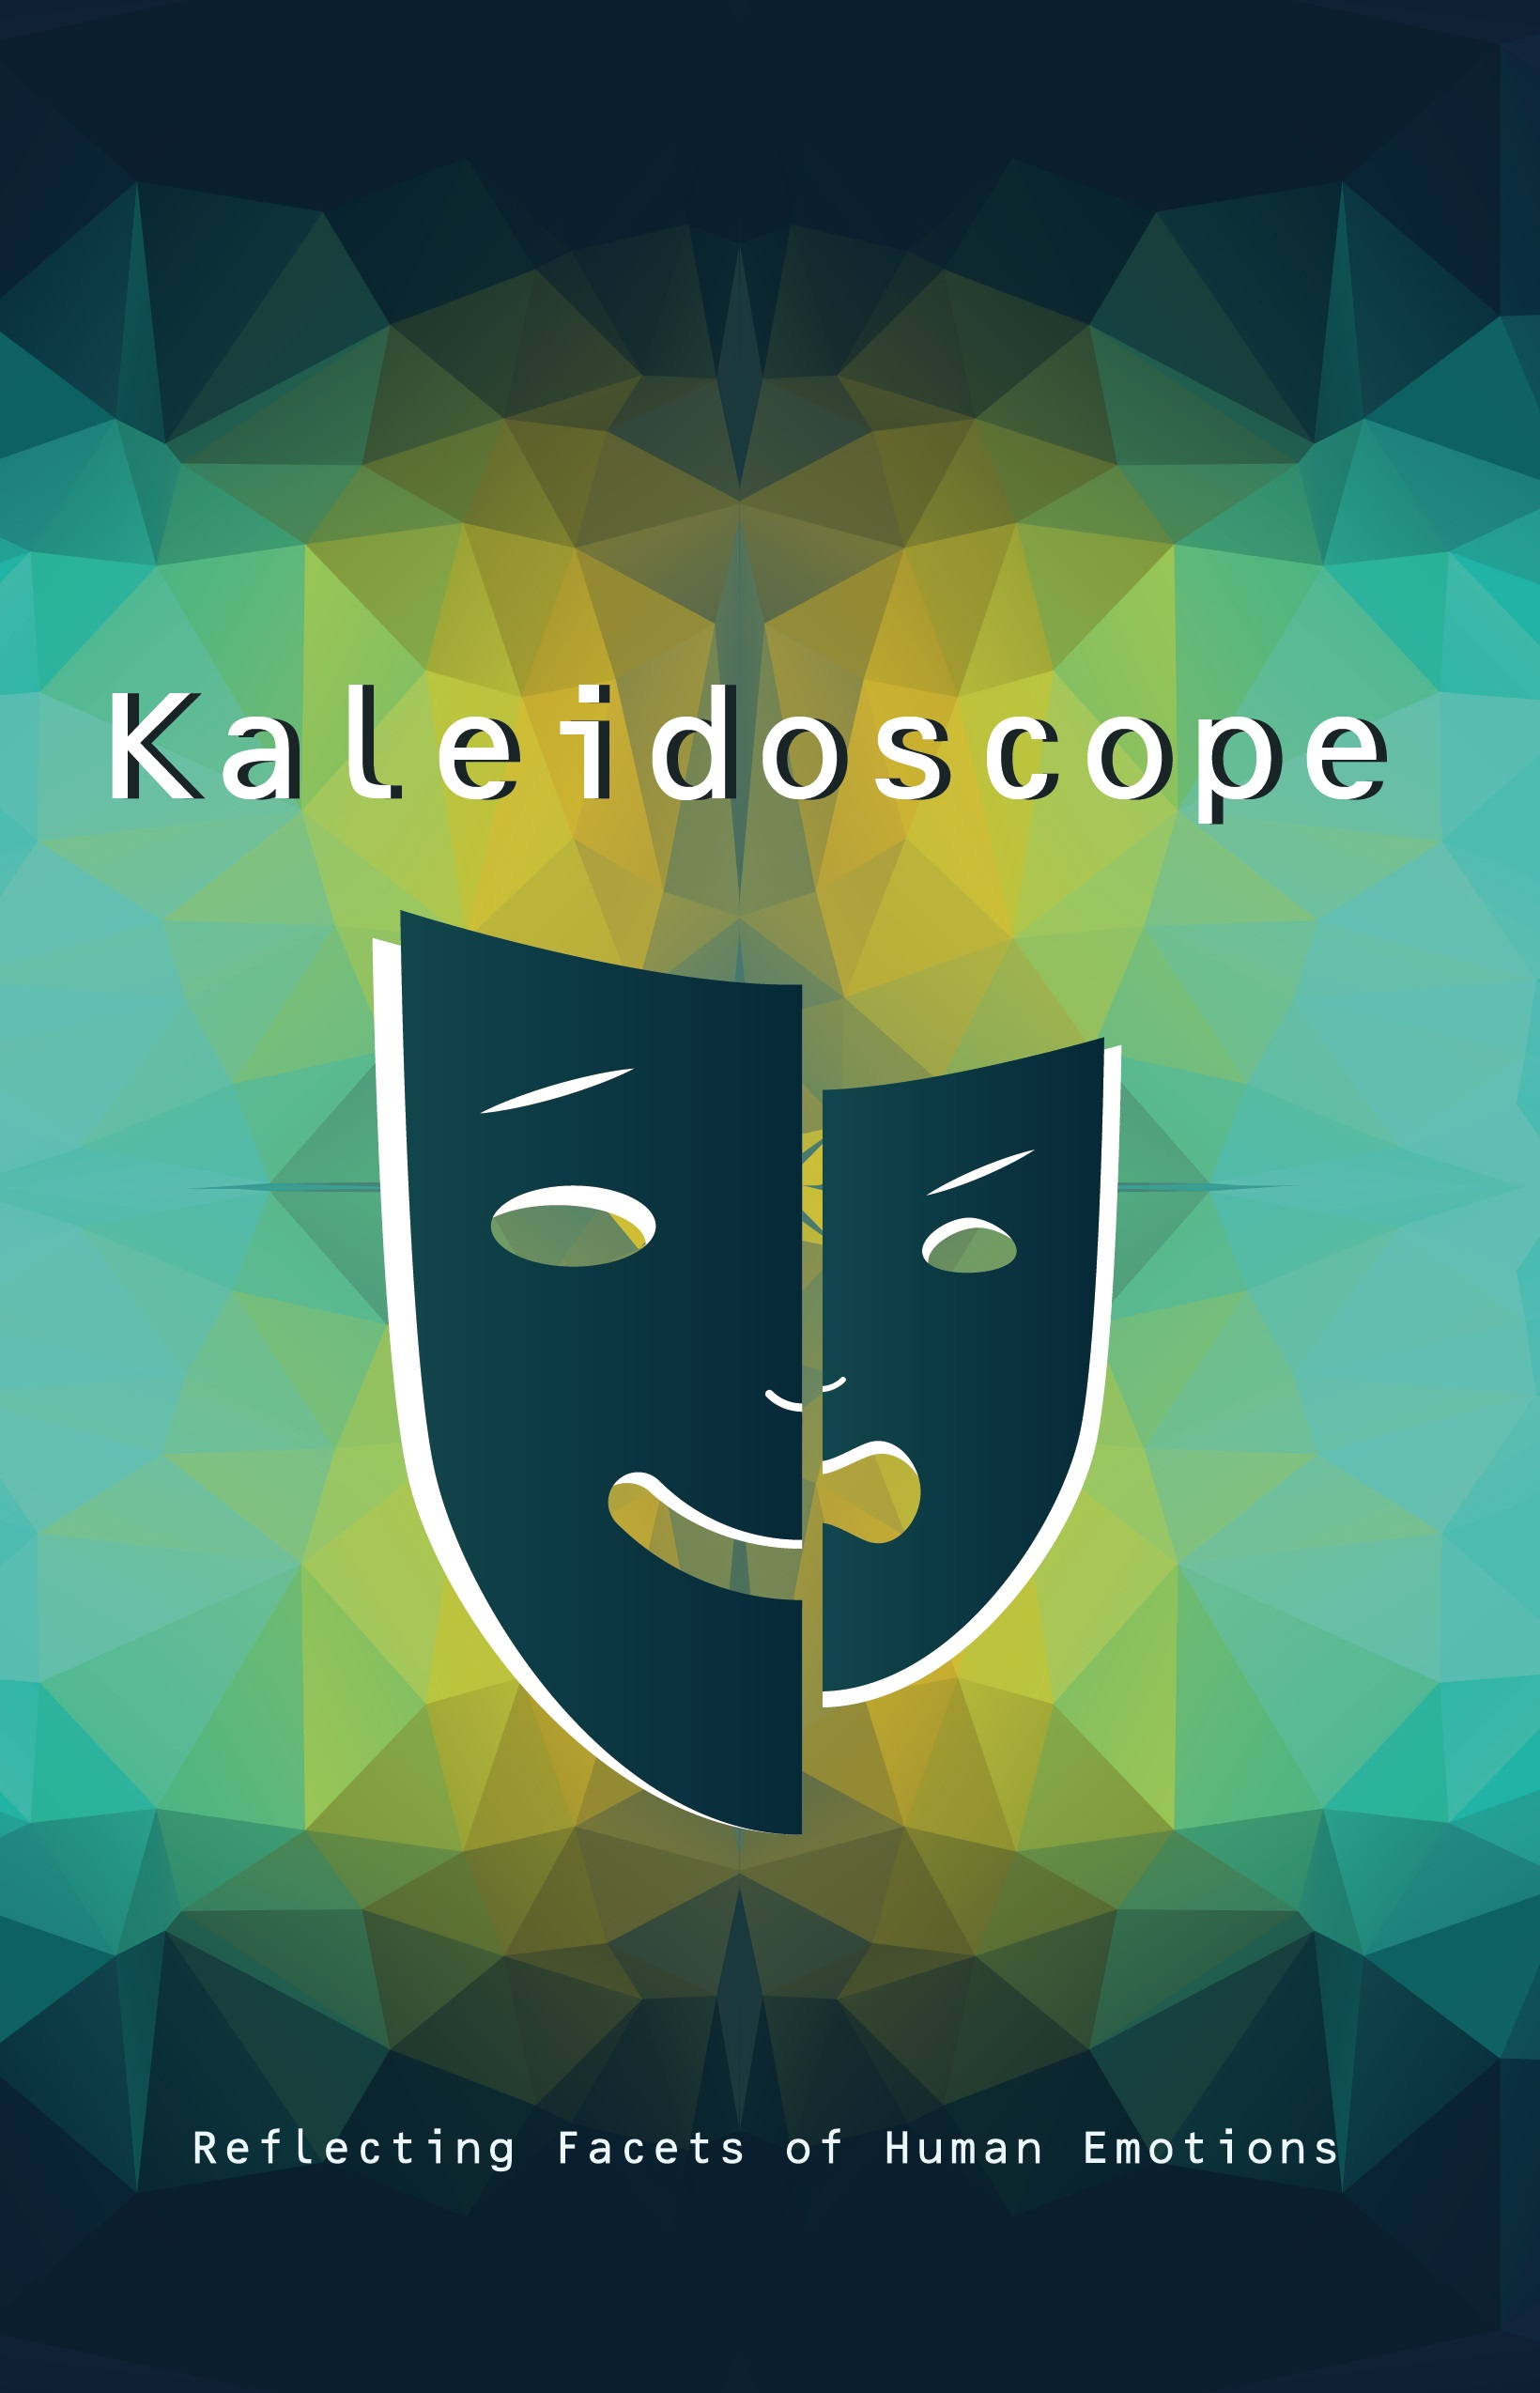 Kaleidoscope - Reflecting Facets of Human Emotions